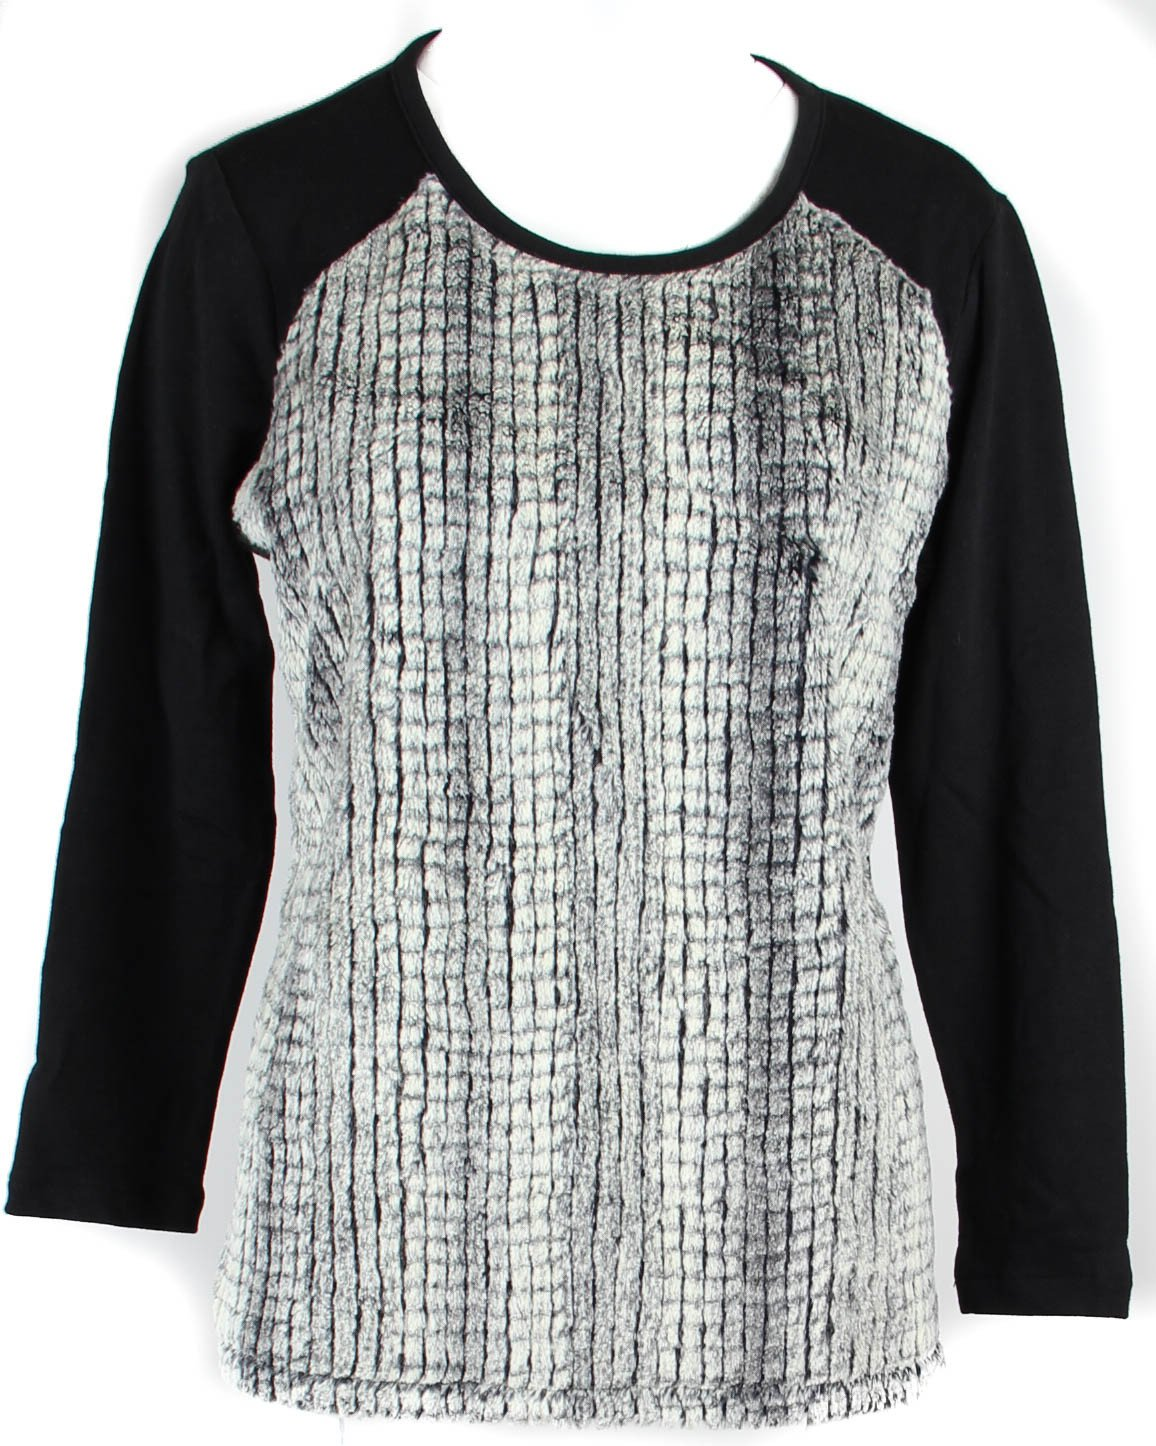 Style & Co. Womens Petites Polyester Faux Fur Front Knit Top Black PM